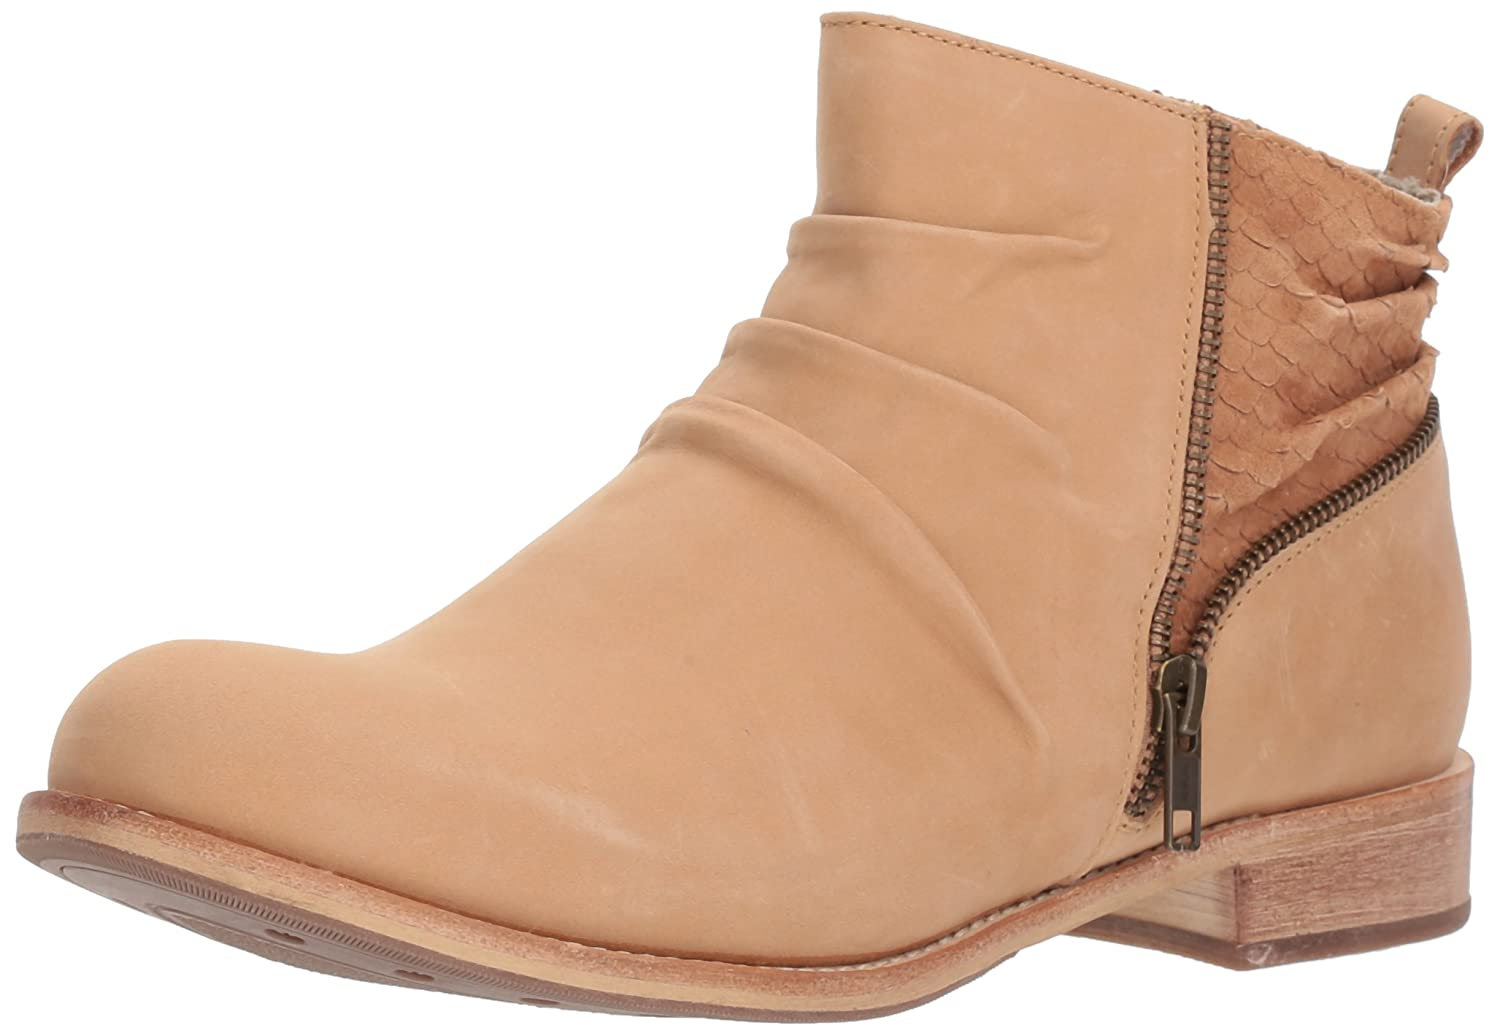 Caterpillar Women's Kiley Fashion Bootie Ankle Boot B072MG2657 6 B(M) US|Tan